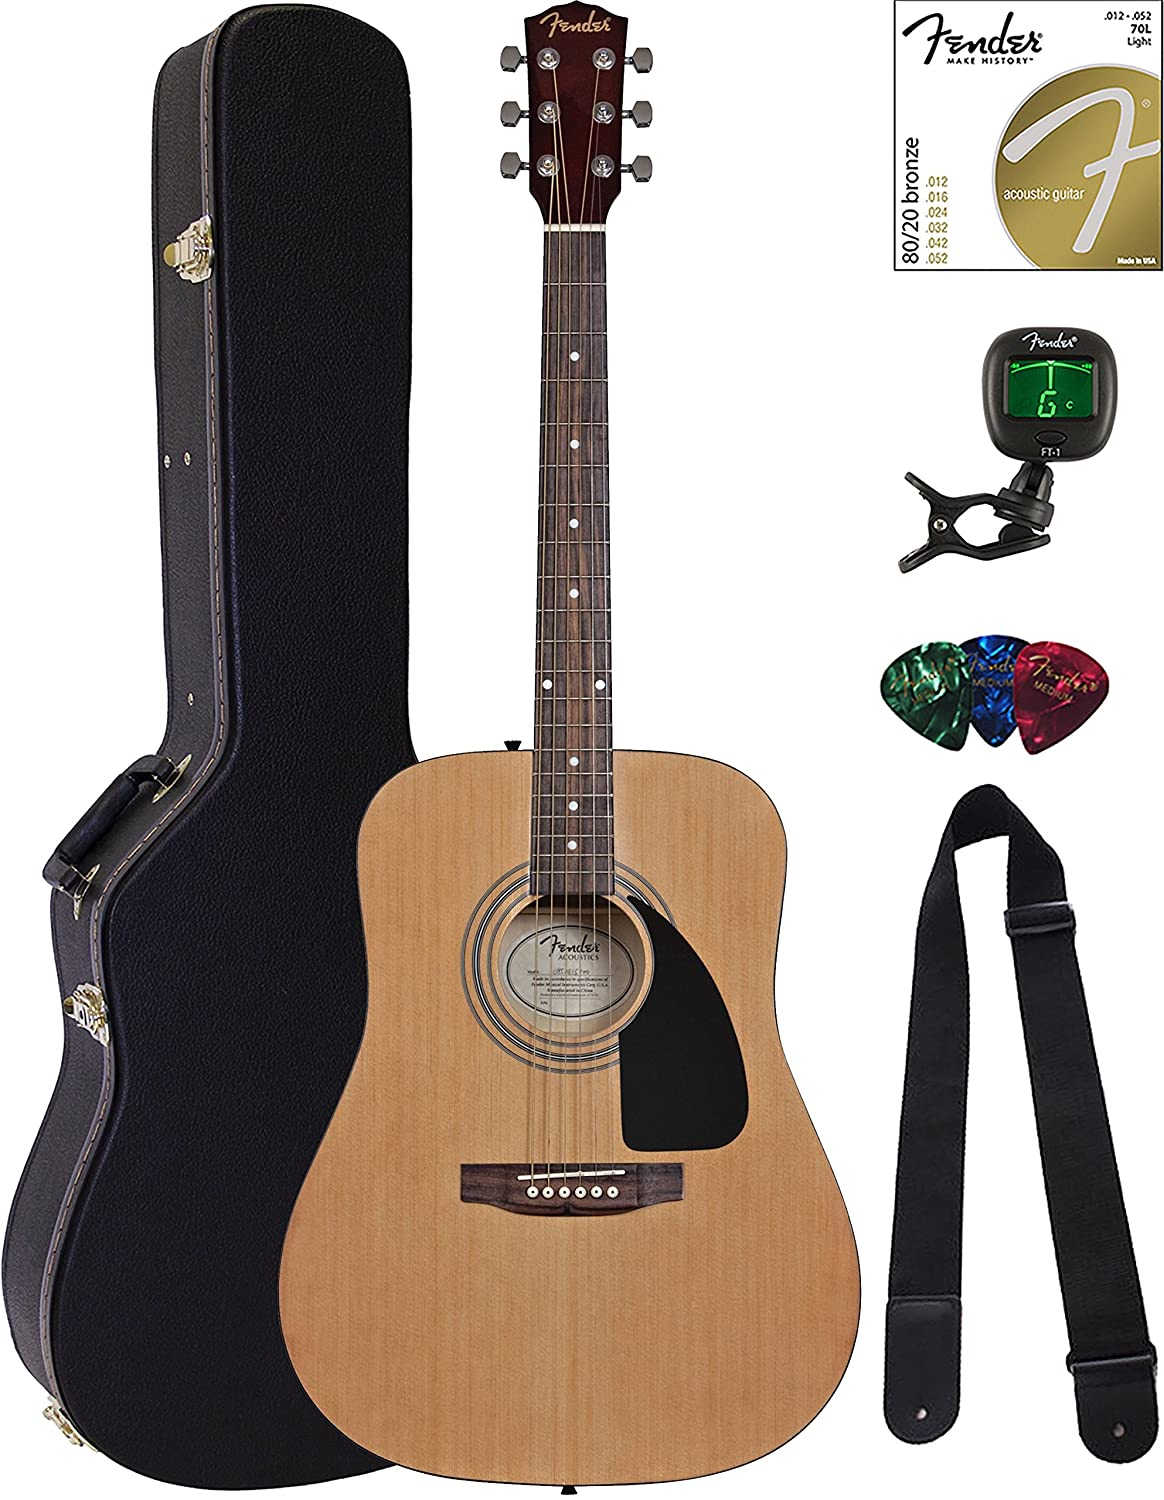 Fender FA-115 Dreadnought Acoustic Guitar - Natural Bundle with Hard Case, Tuner, Strings, Strap, and Picks